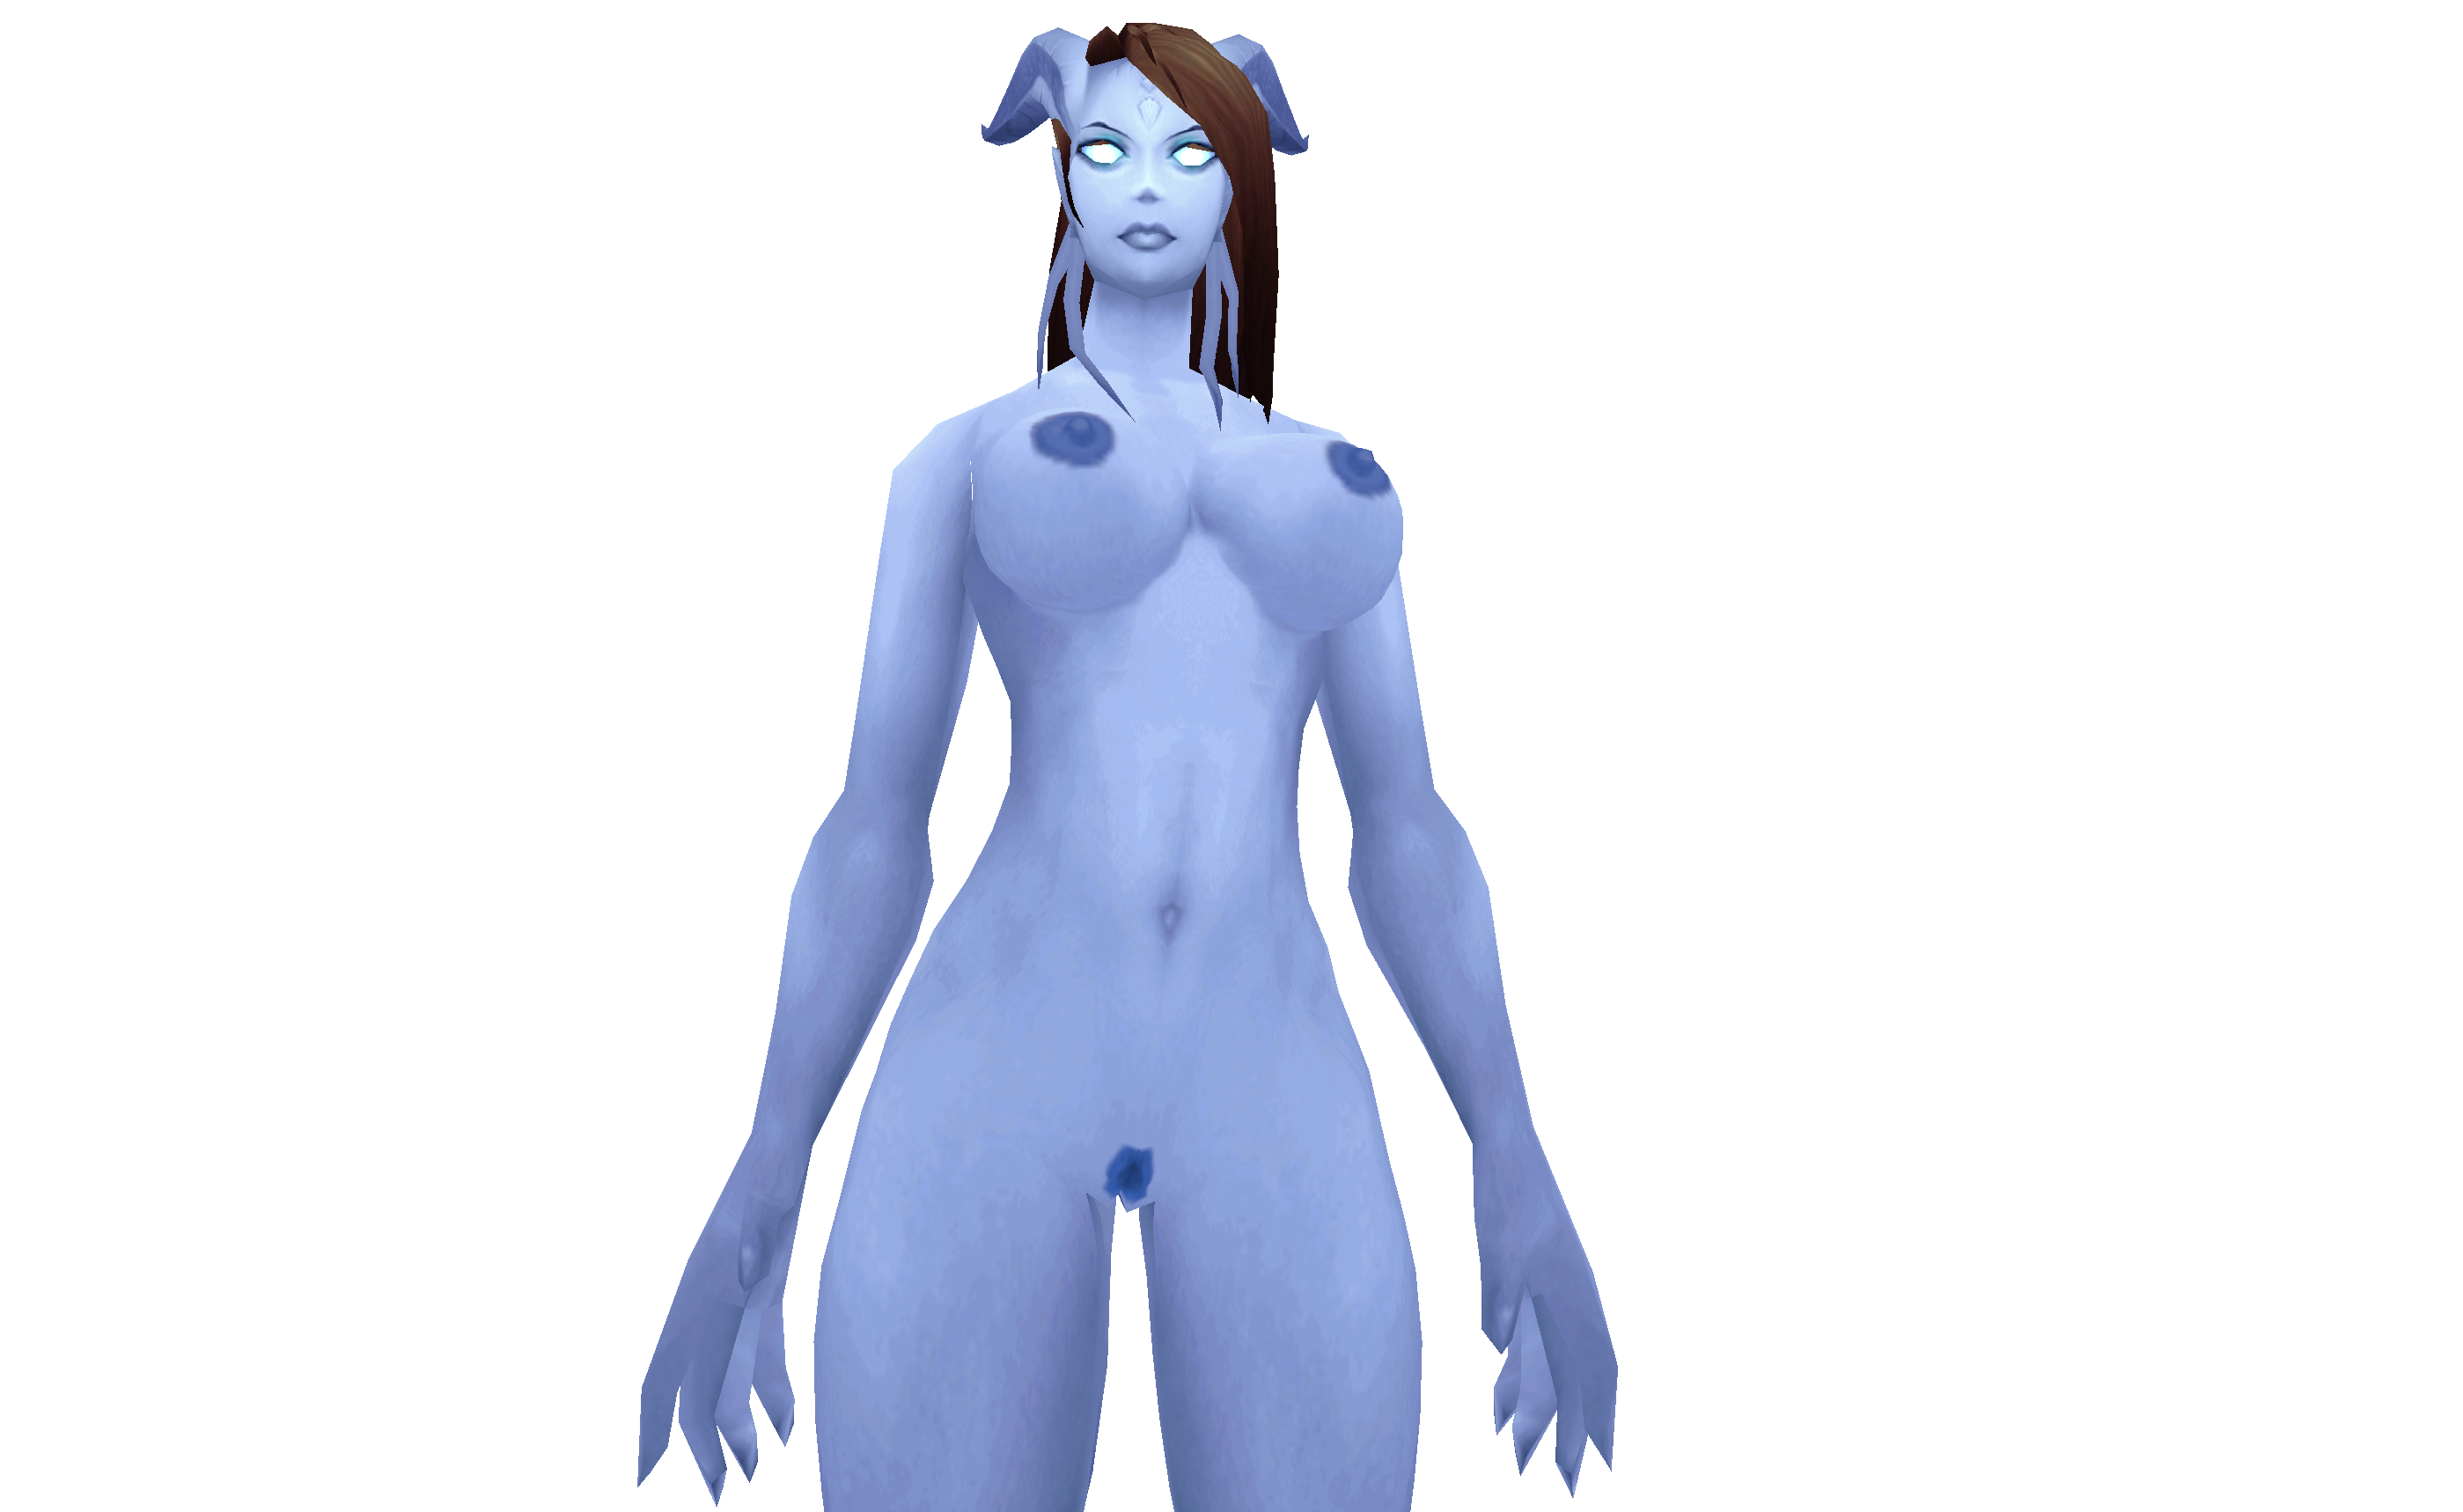 Warcraft nude skins having sex sex images